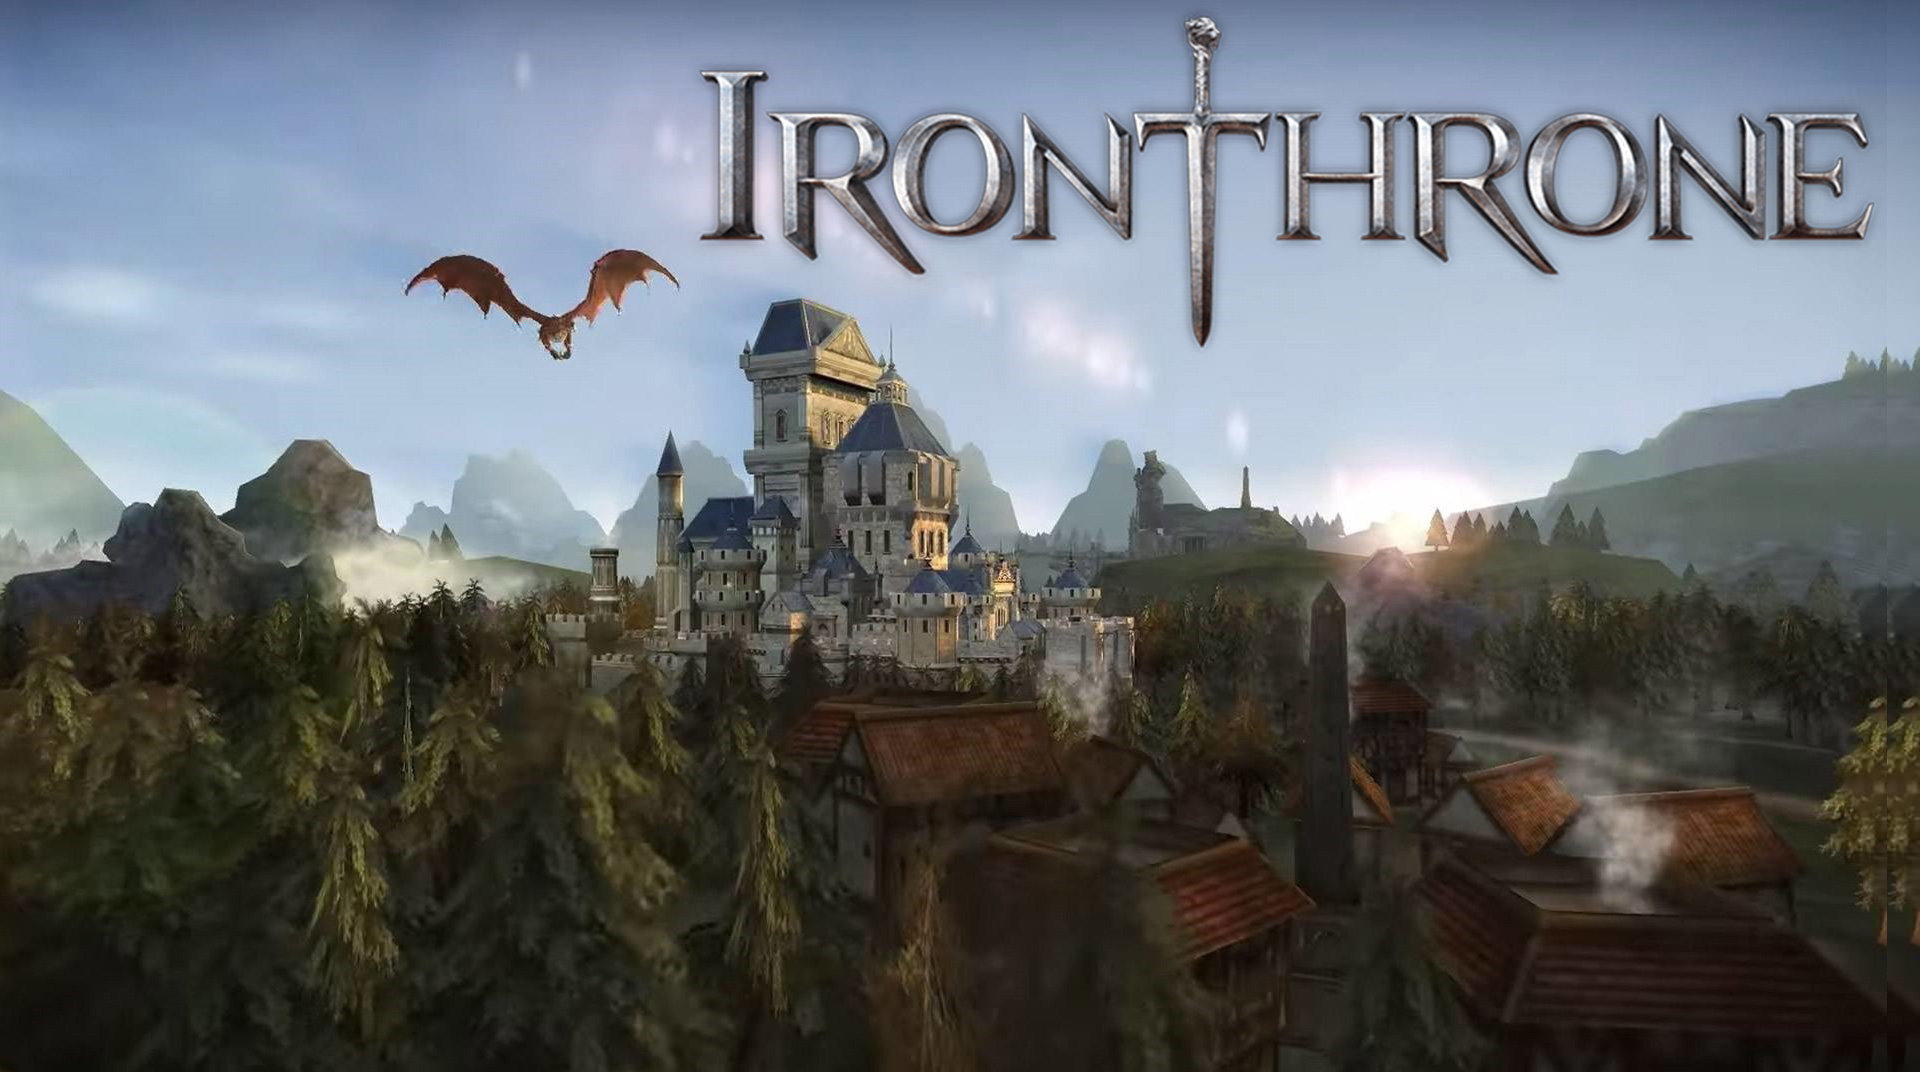 Download Iron Throne on PC